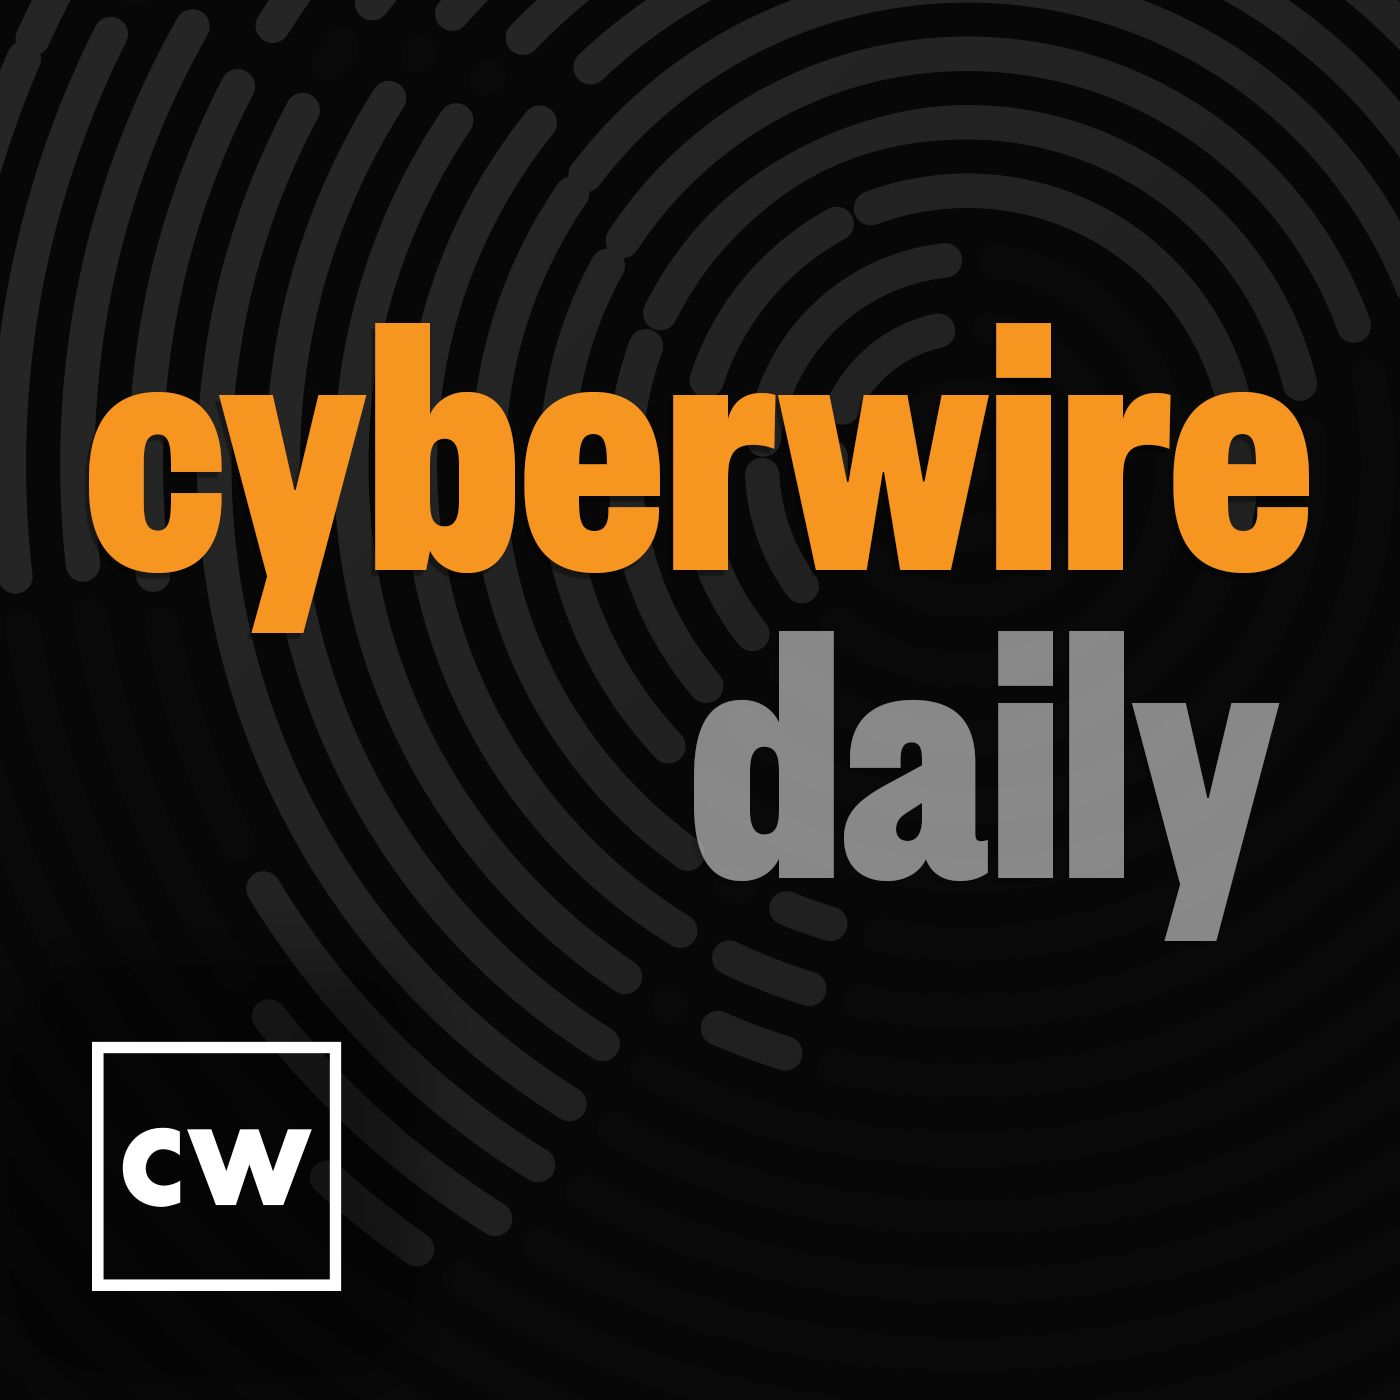 Alleged Russian disinformation campaigns. Beijing's cyberespionage hits the Vatican. Costly PII losses. VPNs and OT security. Big Tech's day with Congress. Online bar exams. Snooping for the Saudis.